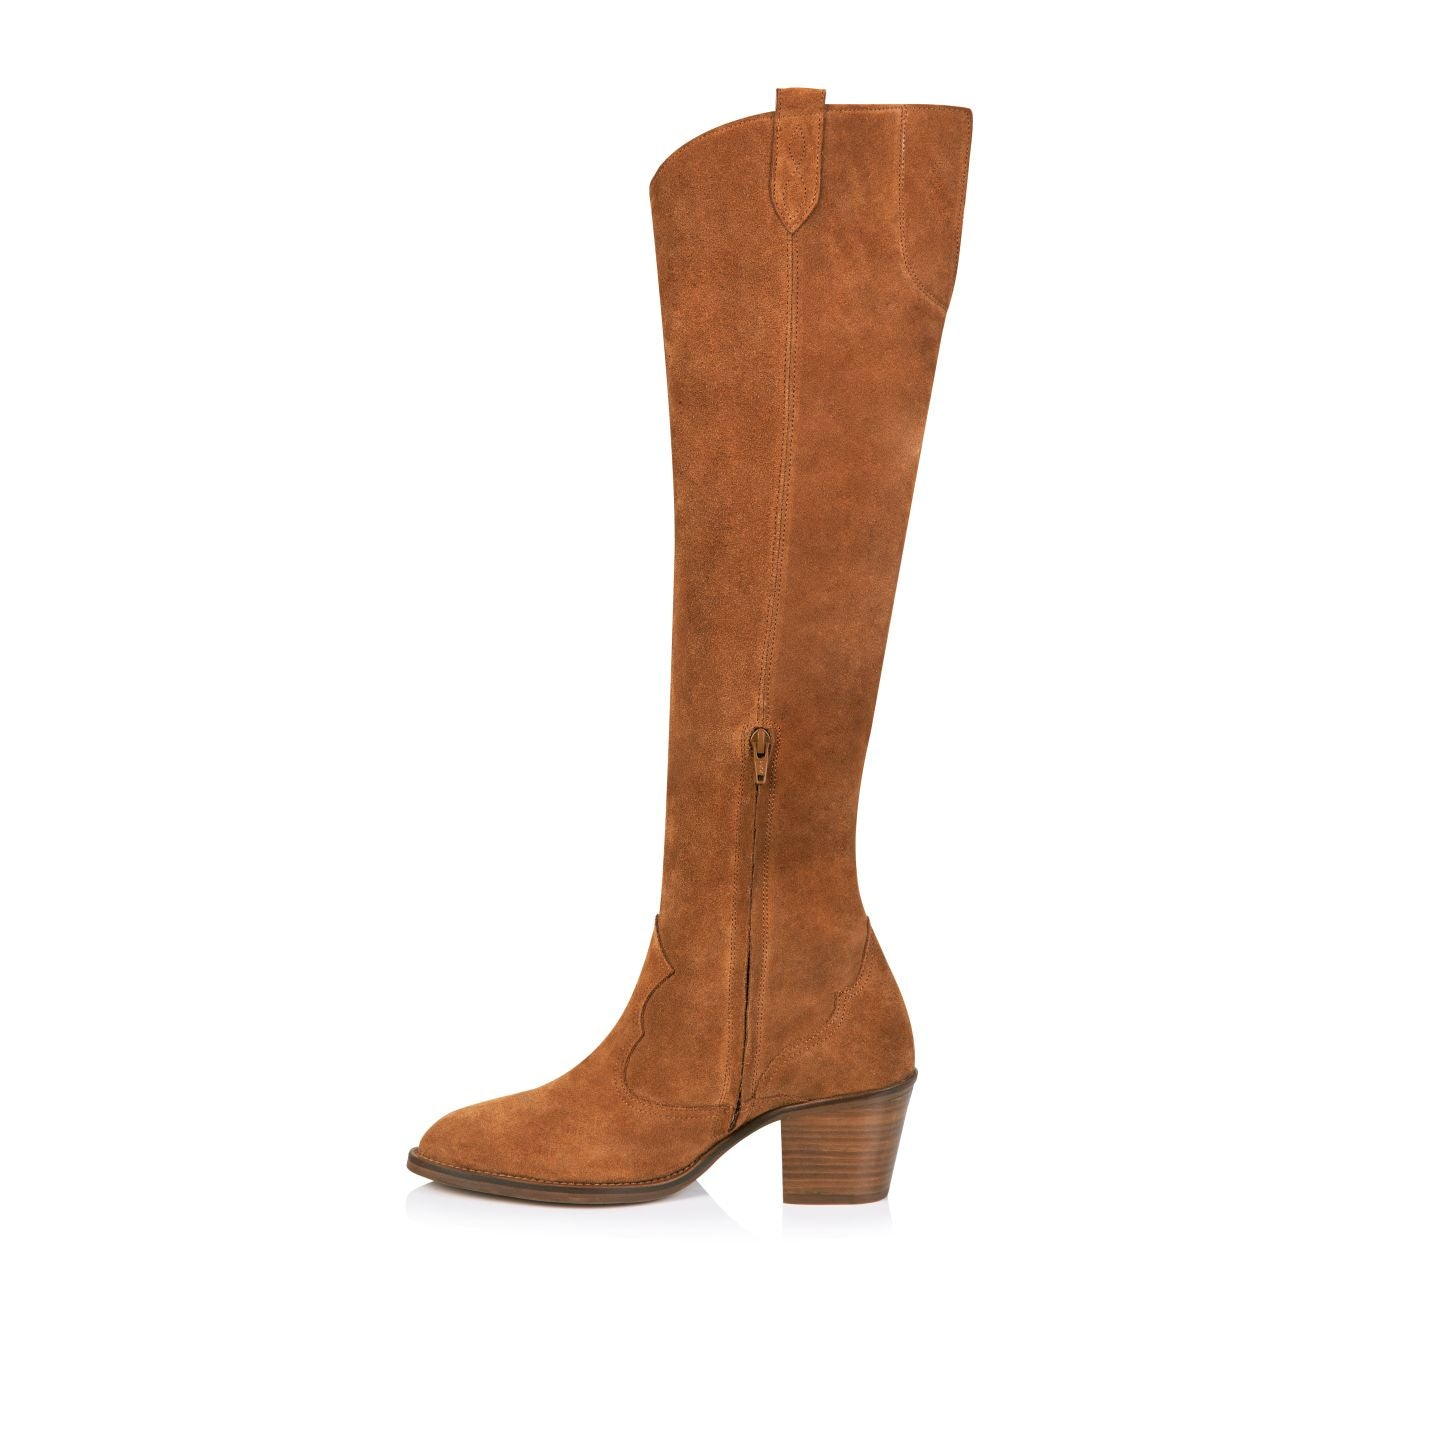 HUTTON: TAN SUEDE TALL BOOTS